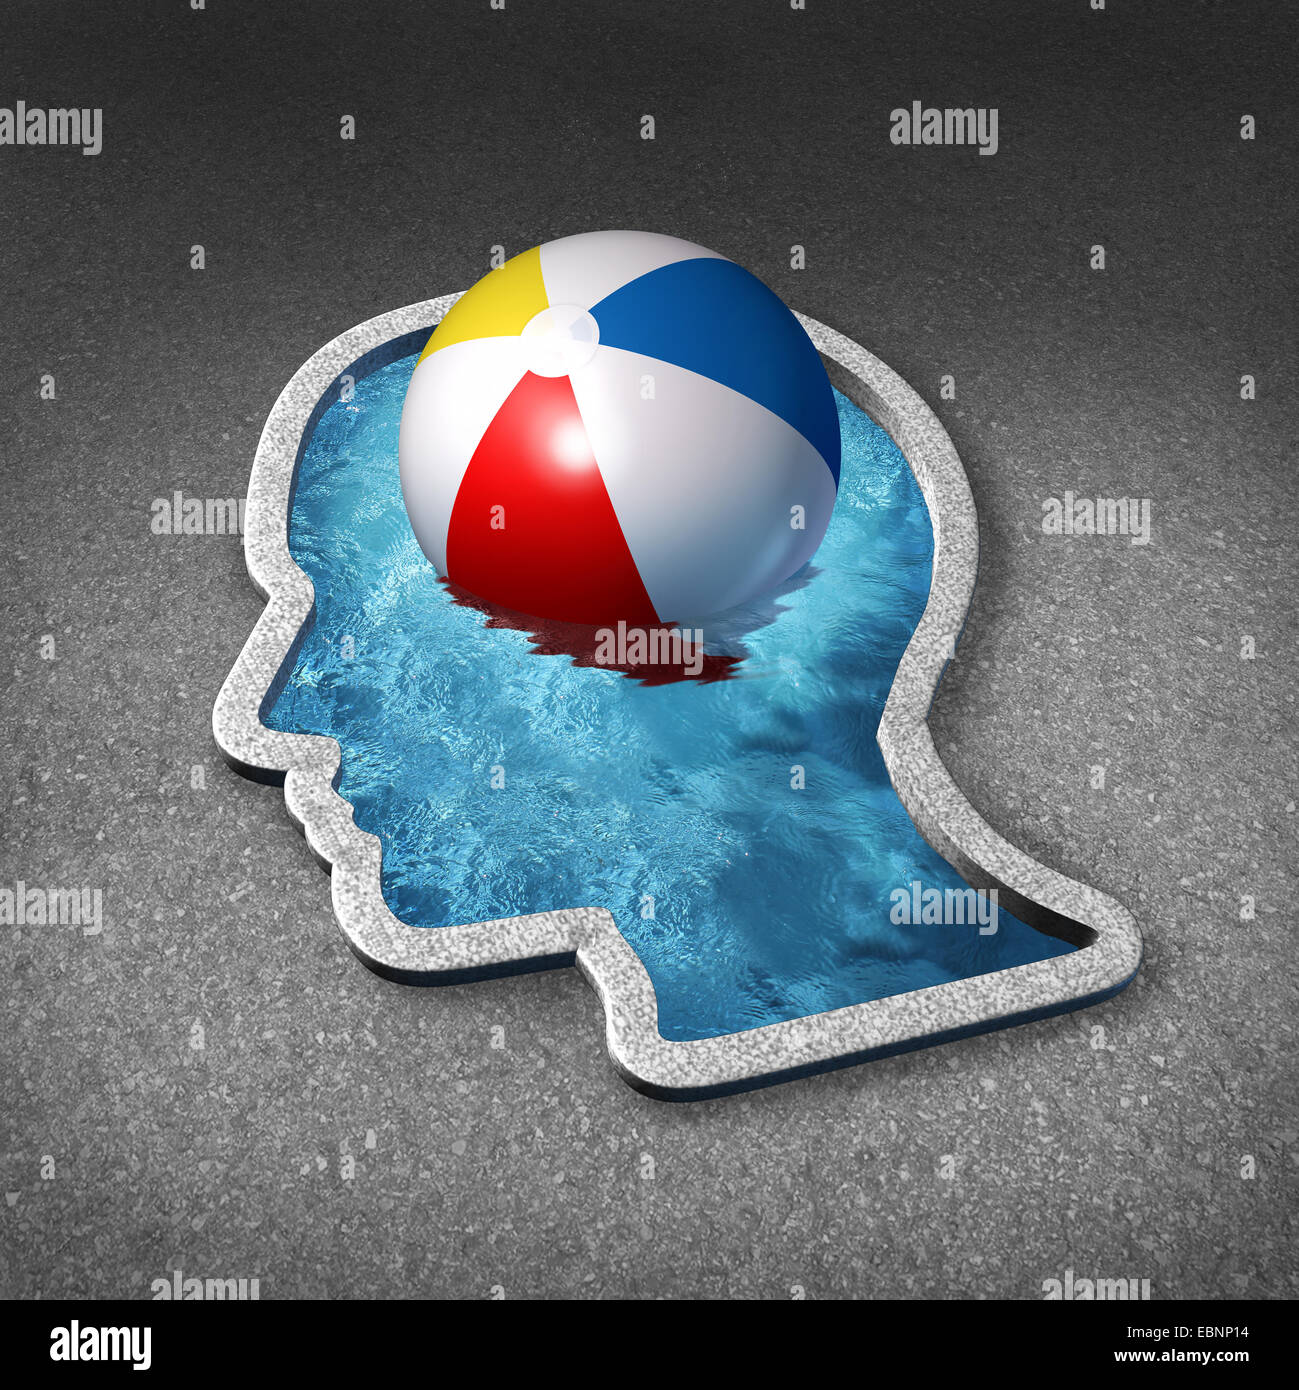 Leisure thinking concept and mental relaxation symbol as a swimming pool shaped as a human face with a beach ball - Stock Image